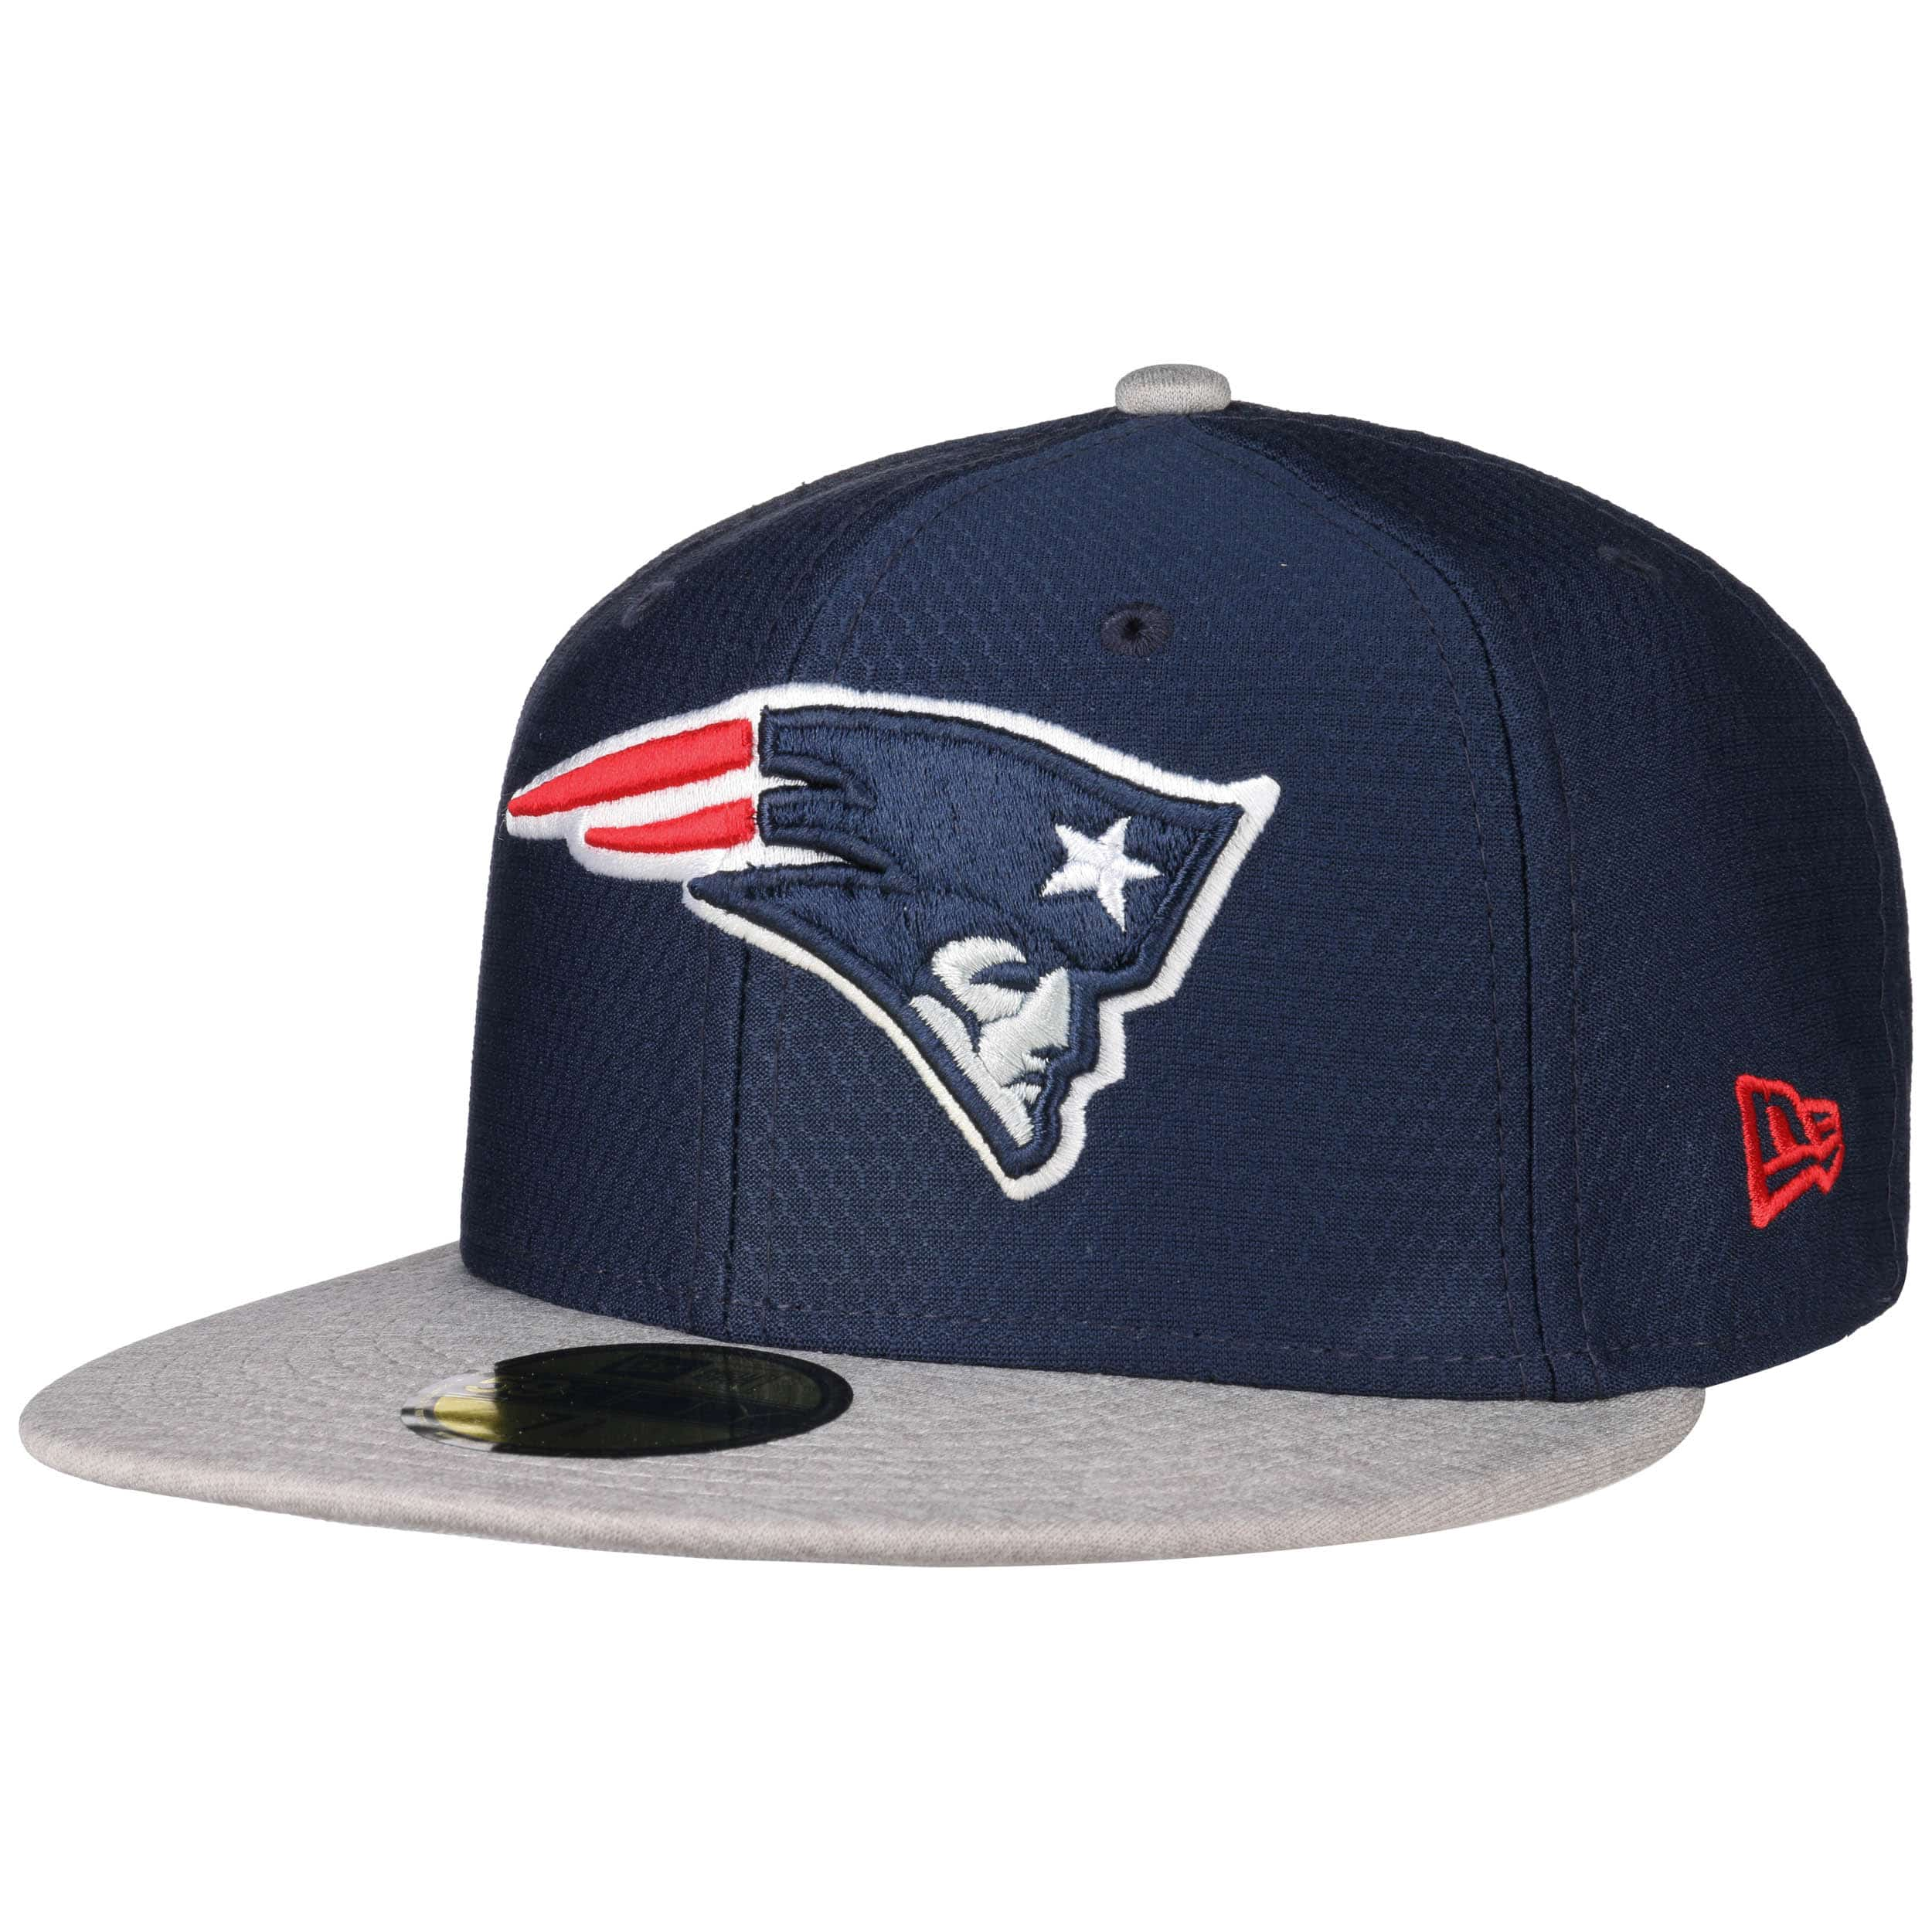 0dfc69d56848a 59Fifty DryEra Patriots Cap. by New Era